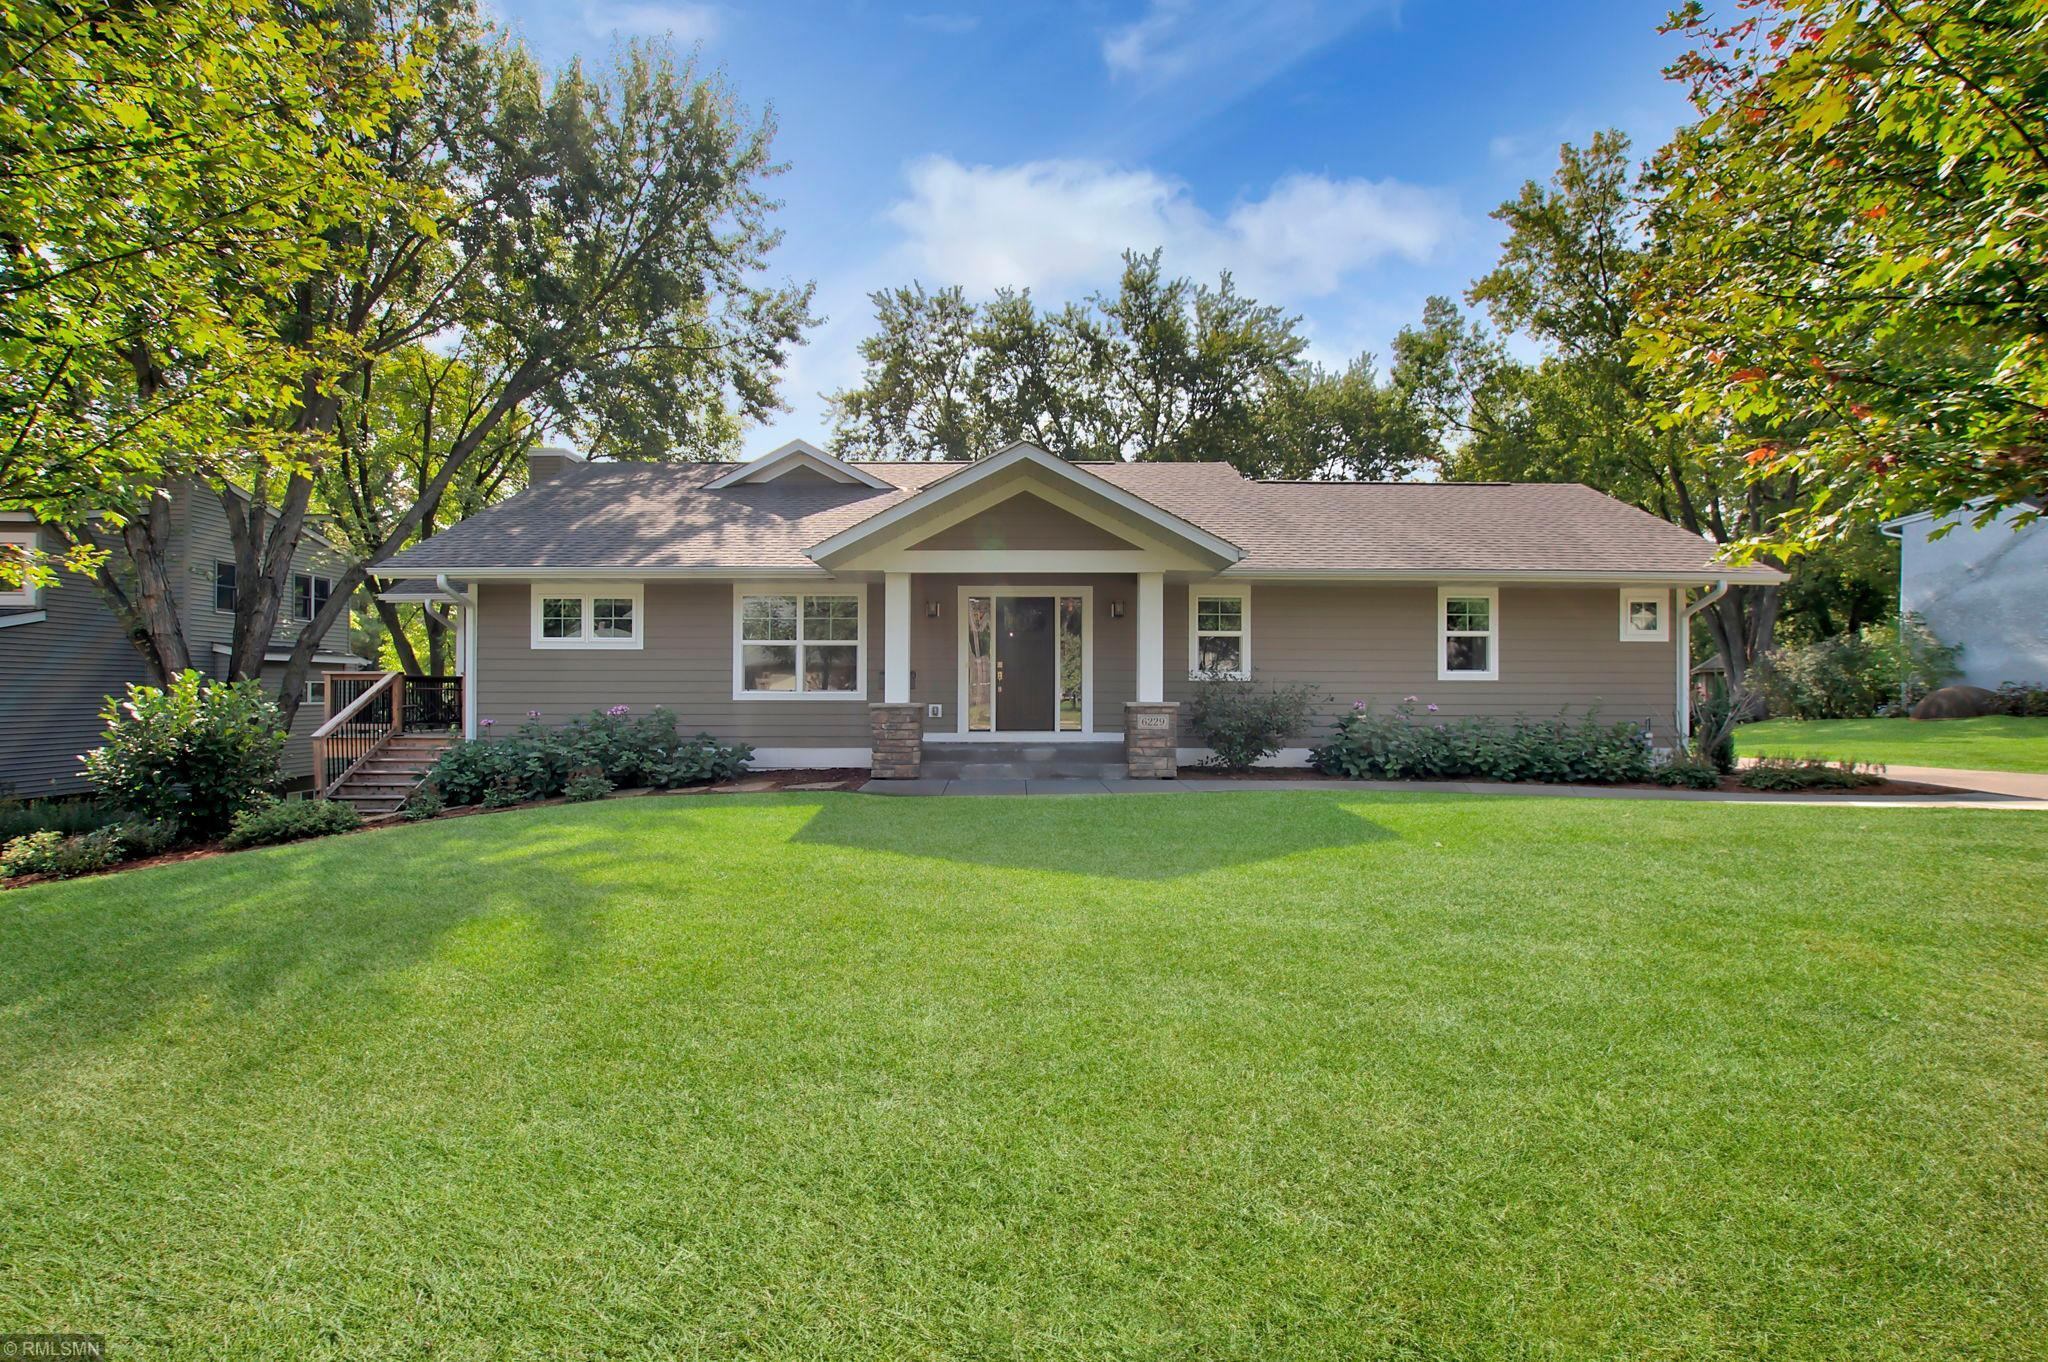 6229 Belmore Lane Property Photo - Edina, MN real estate listing